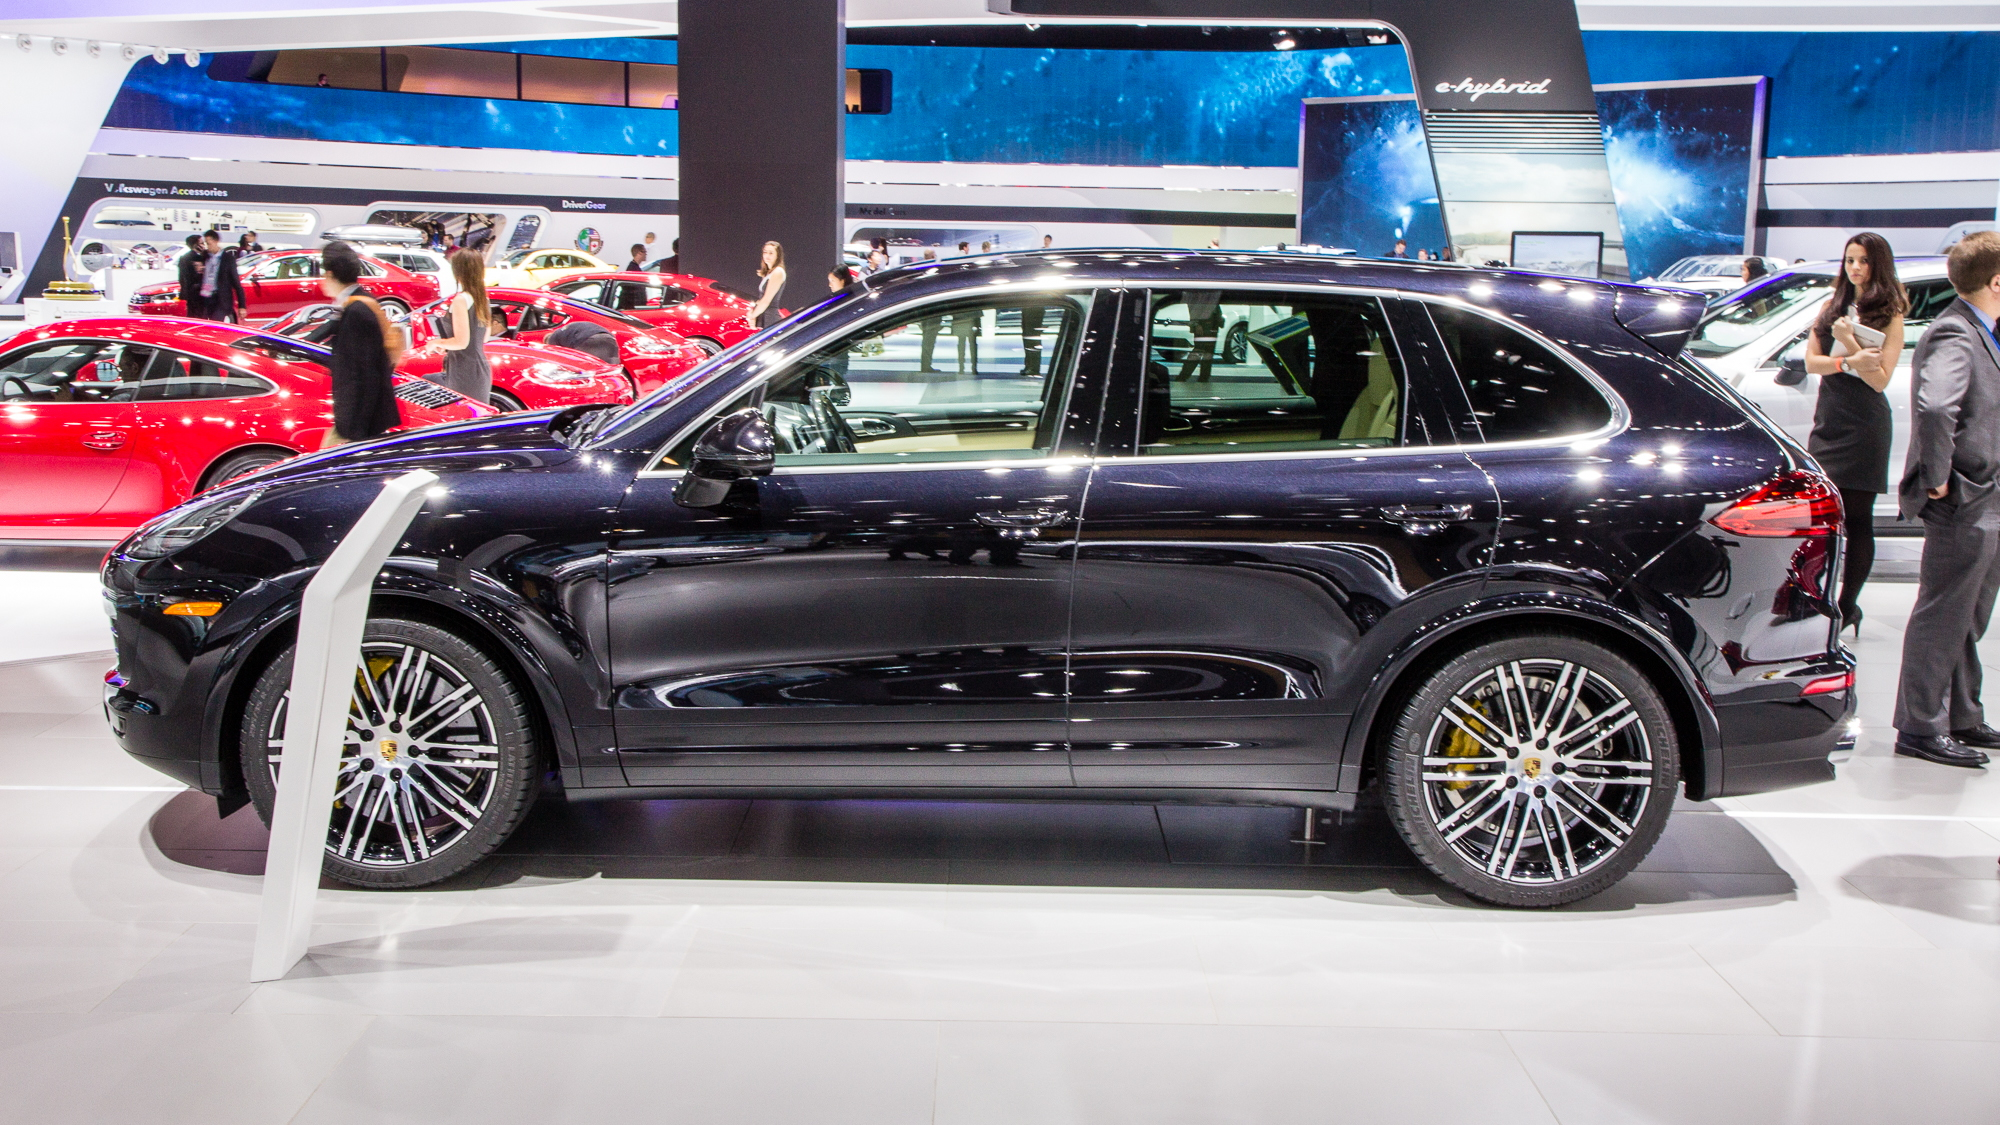 2016 Porsche Cayenne Turbo S live photos, 2015 Detroit Auto Show